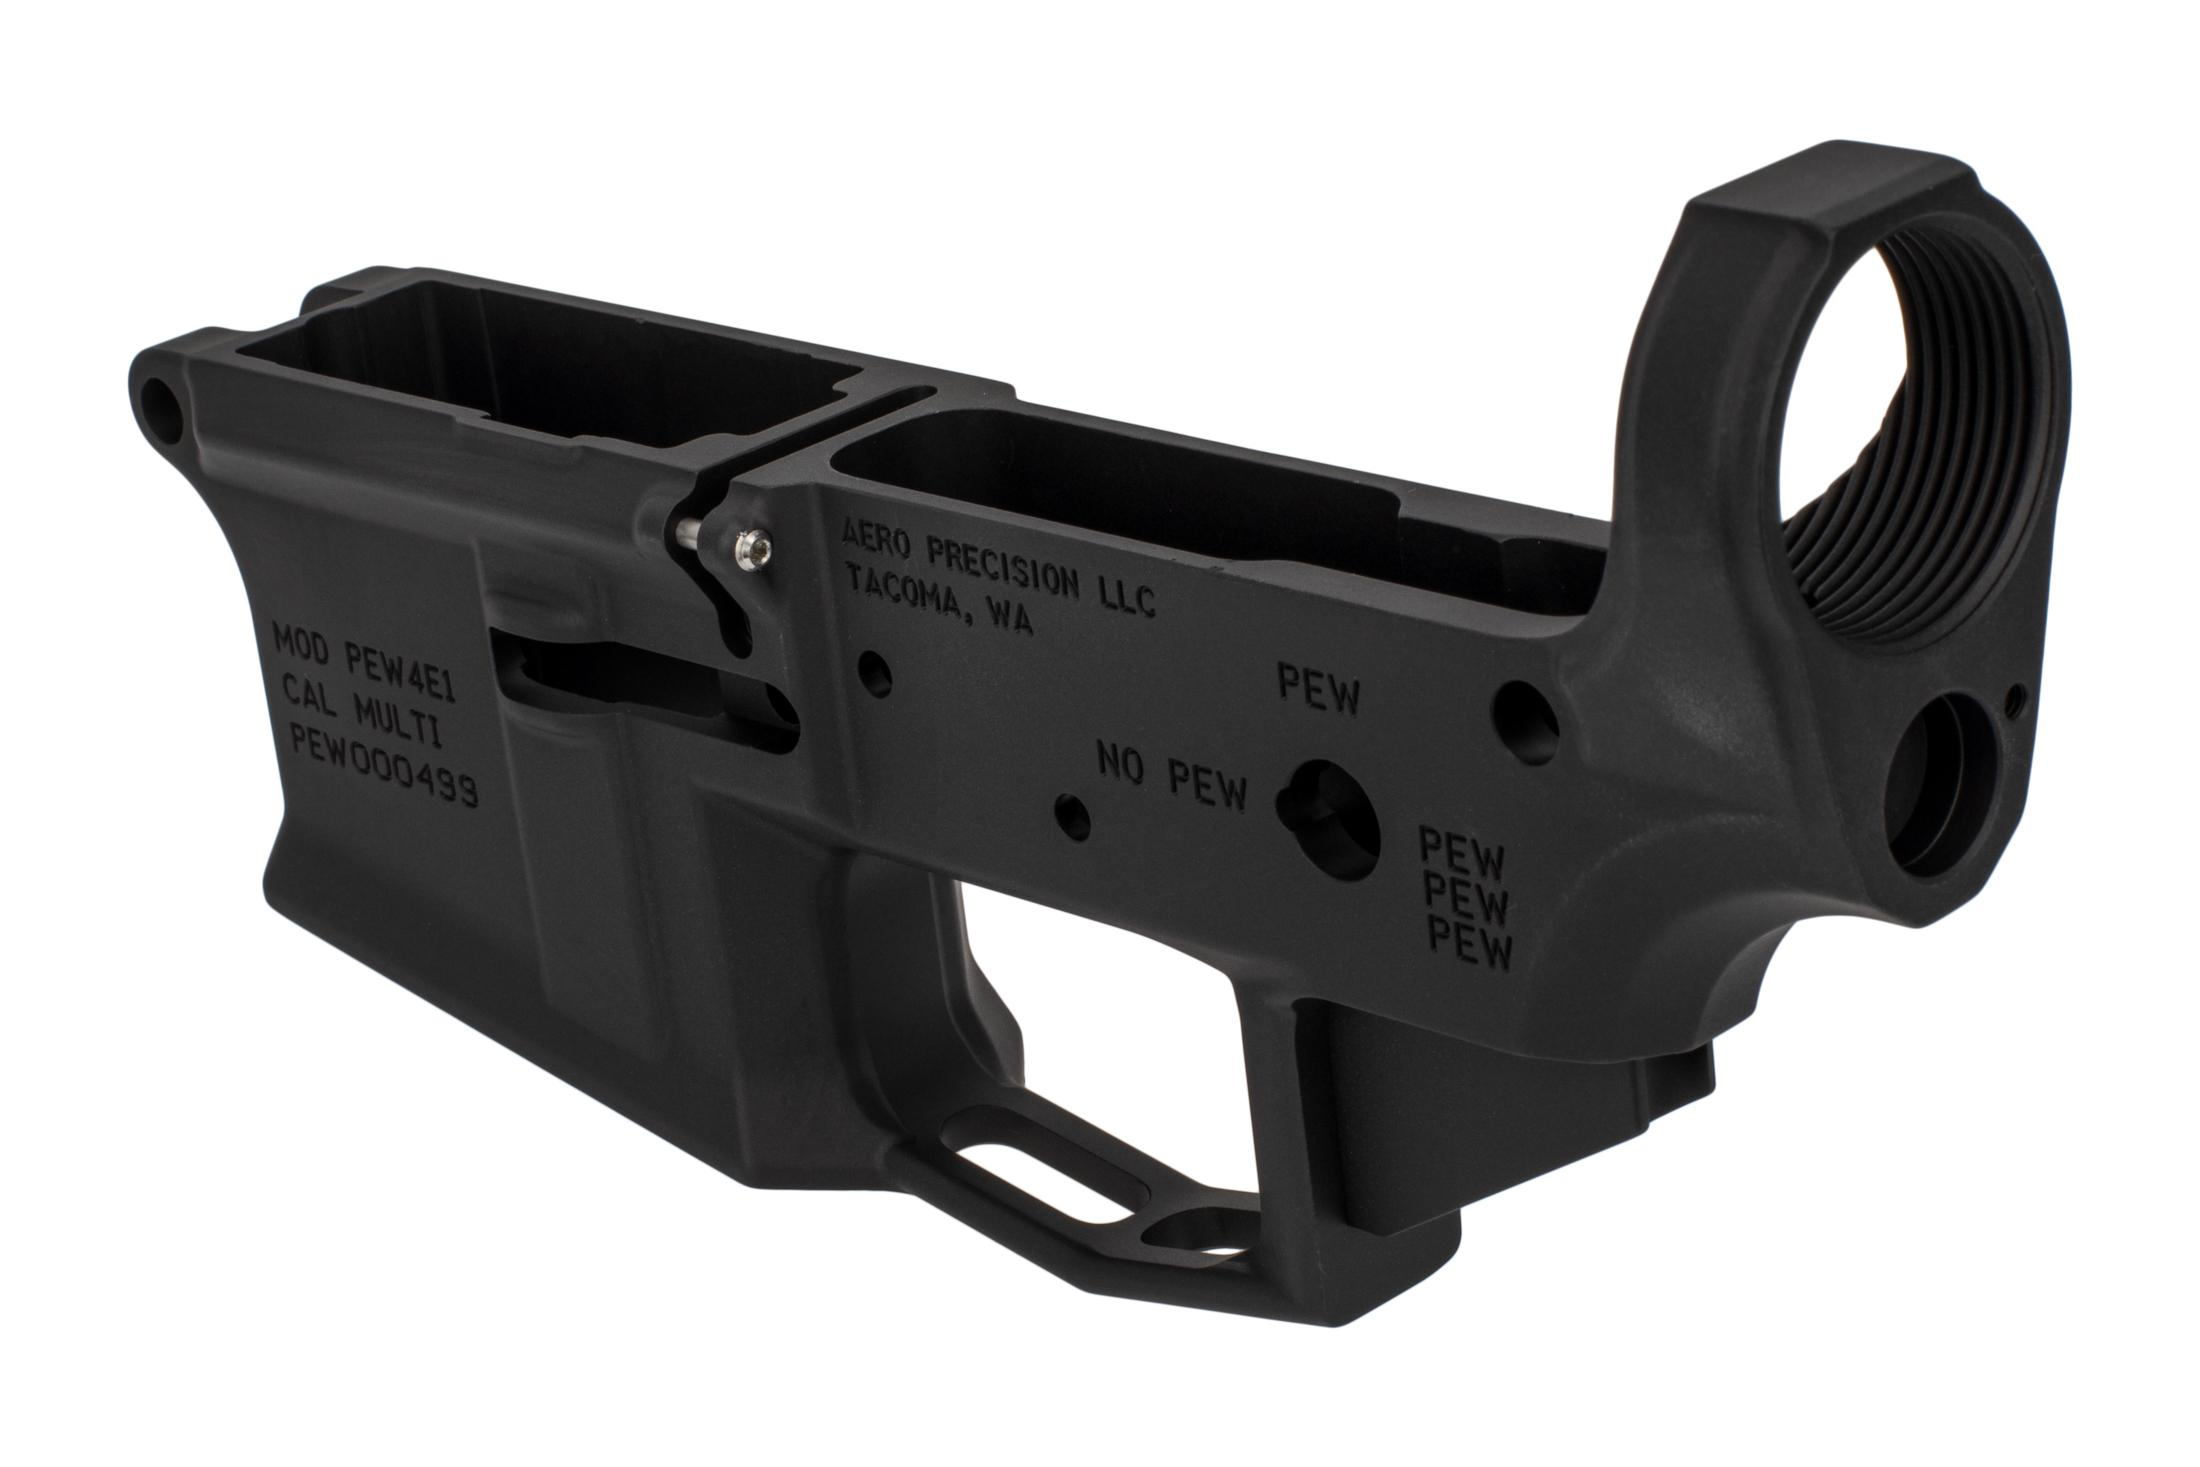 The Aero M4E1 stripped lower features a threaded bolt release detent